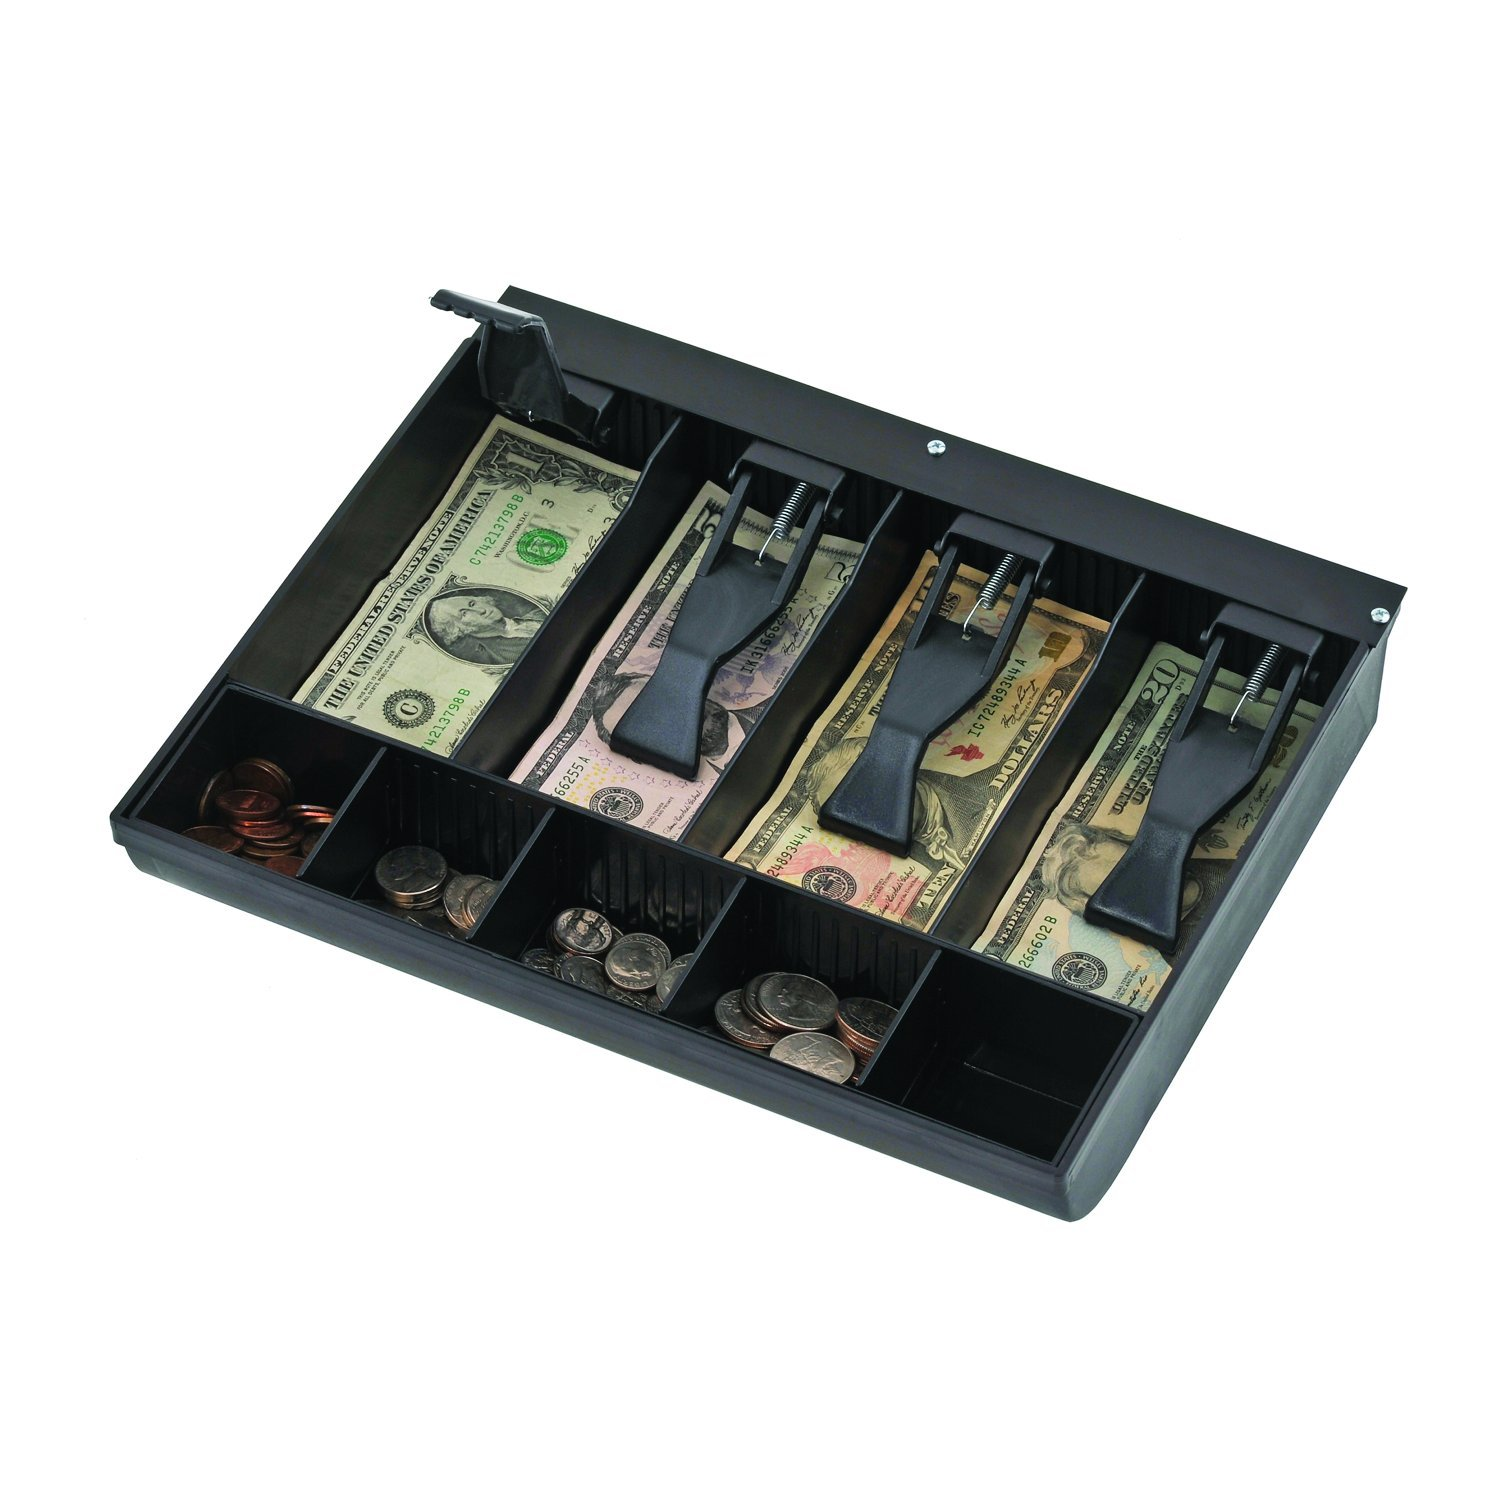 STEELMASTER 2.19 x 9.63 x 11.5 Inches, Replacement Cash Tray for Model 1046, Black (225284304) by MMF Industries (Image #1)